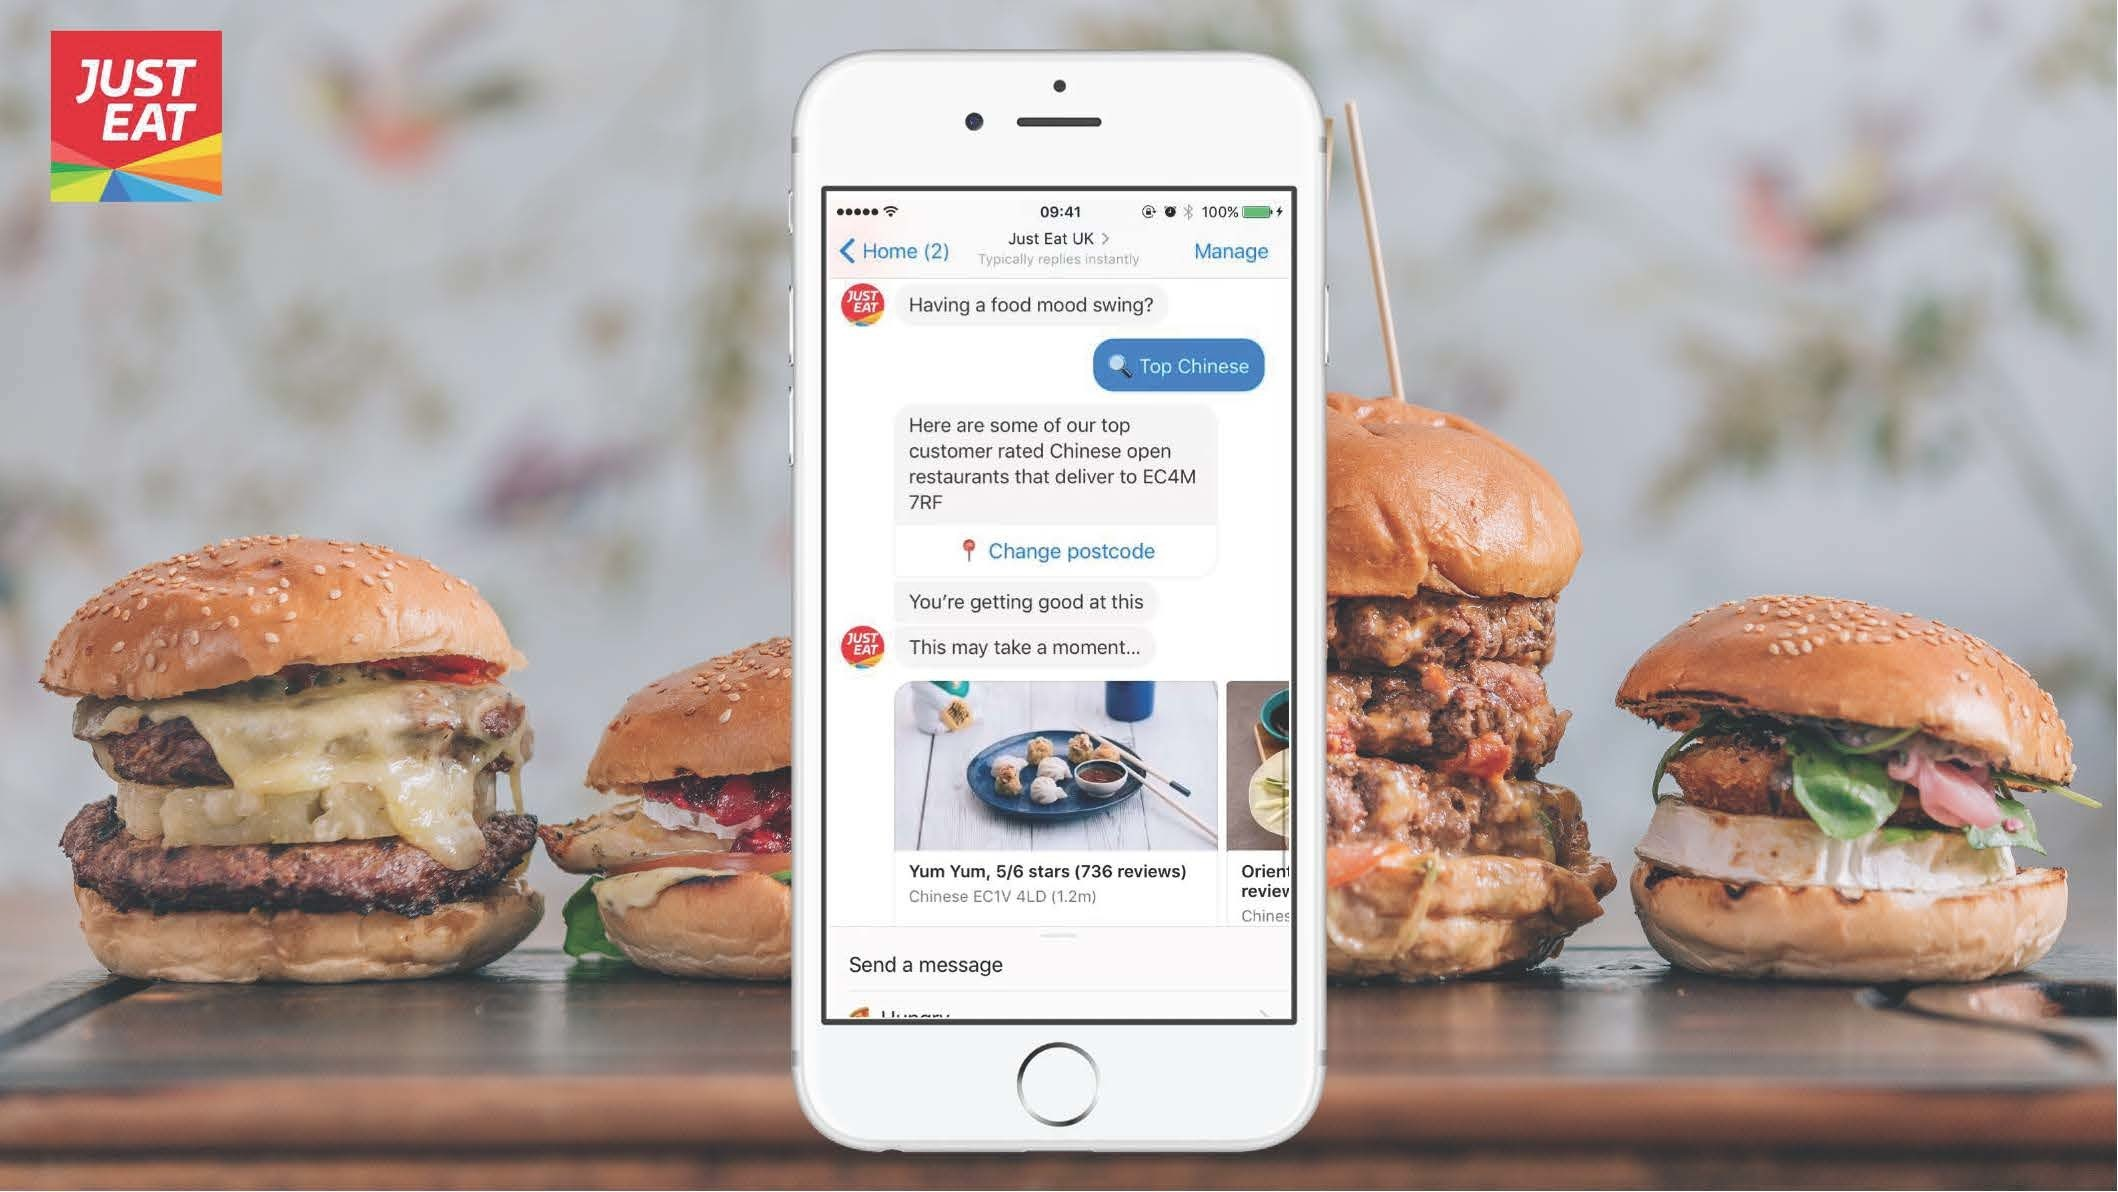 use of chatbots in ecommerce - Just Eat, online food order and delivery service, said their chatbot drove a 266% conversion rate, compared to an average social ad.